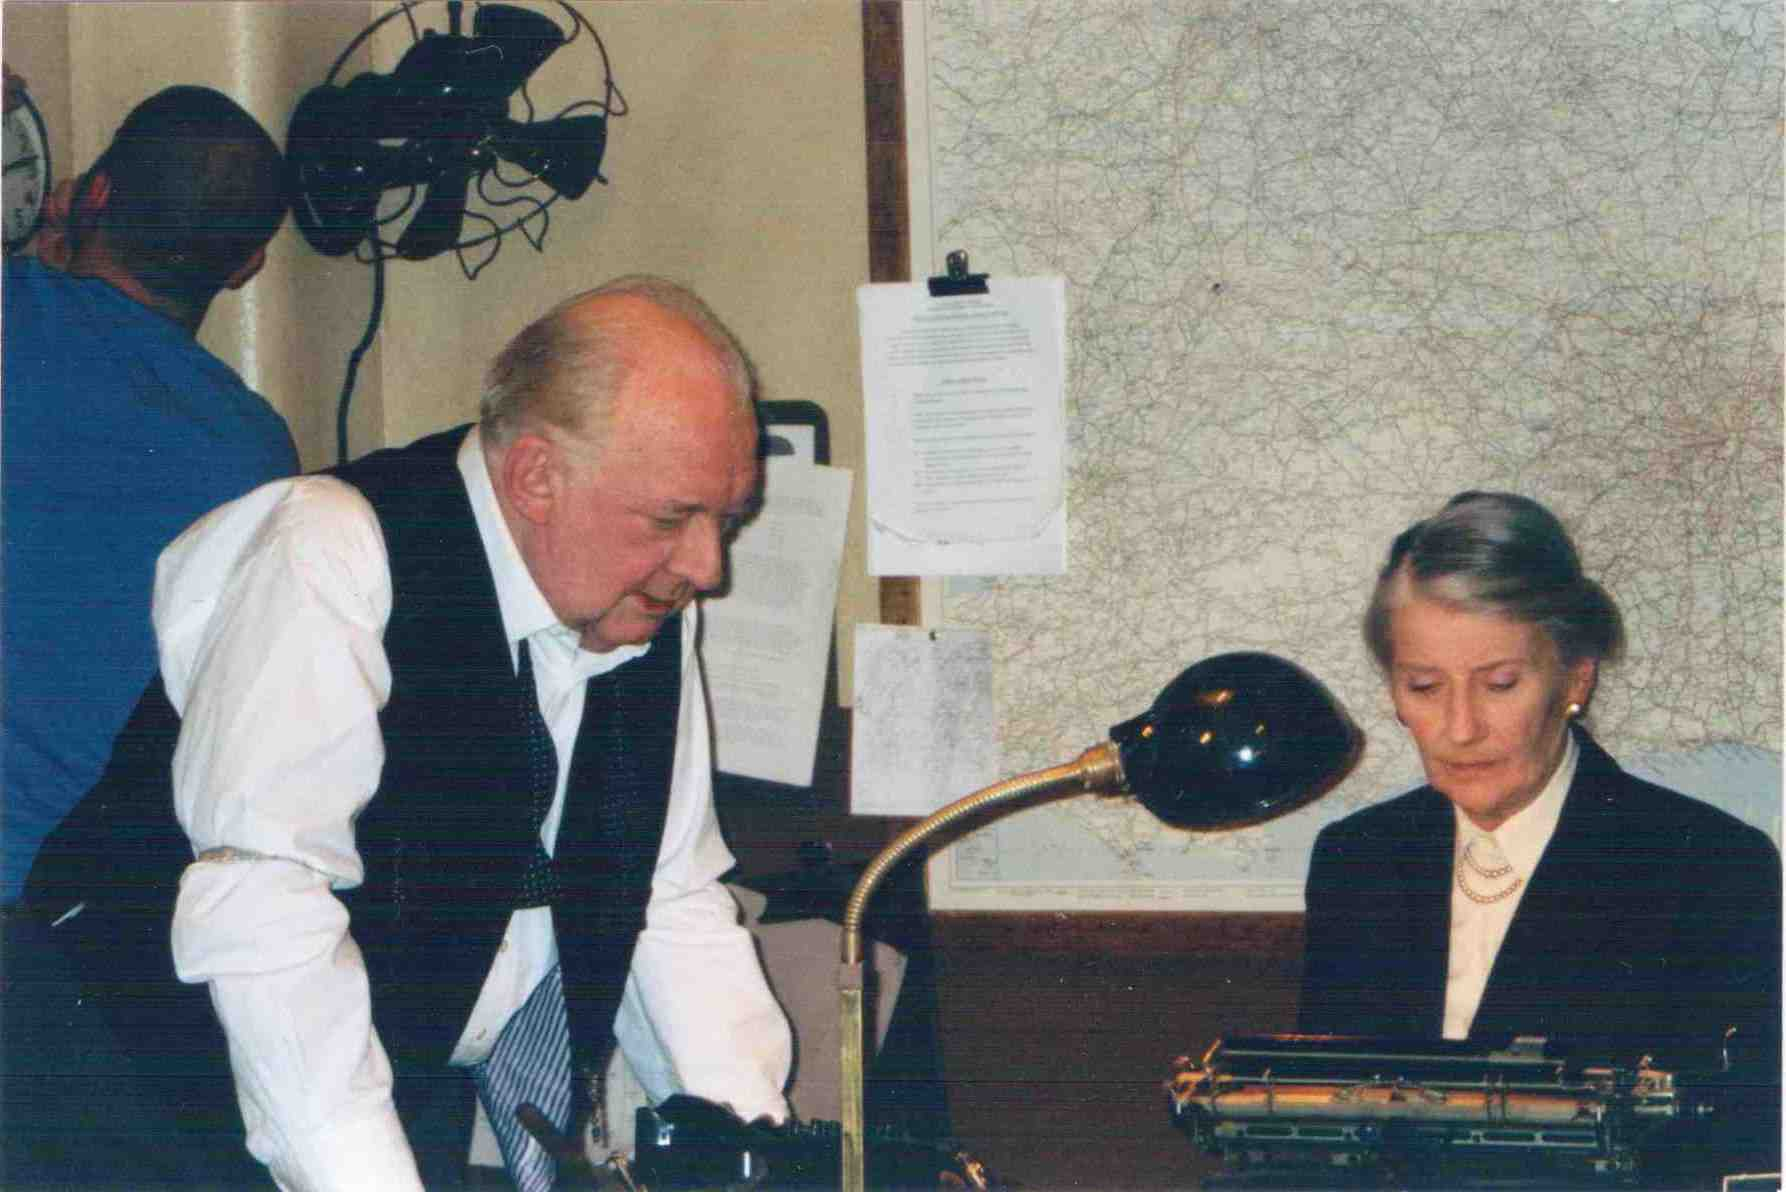 Phyllida Law & David Ryall as Churchill in the war rooms